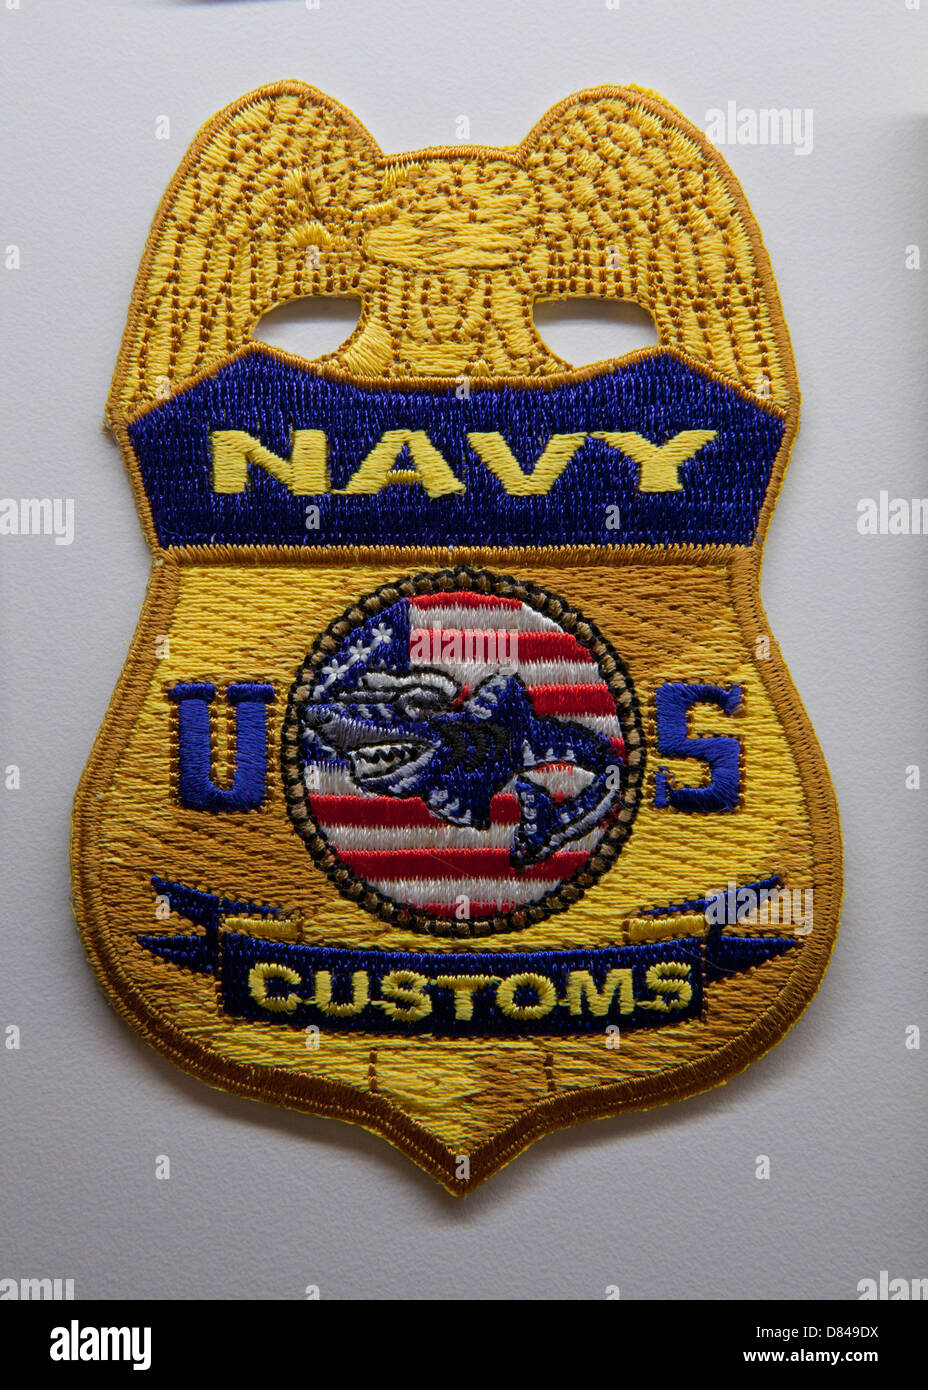 US Navy Customs patch - Stock Image